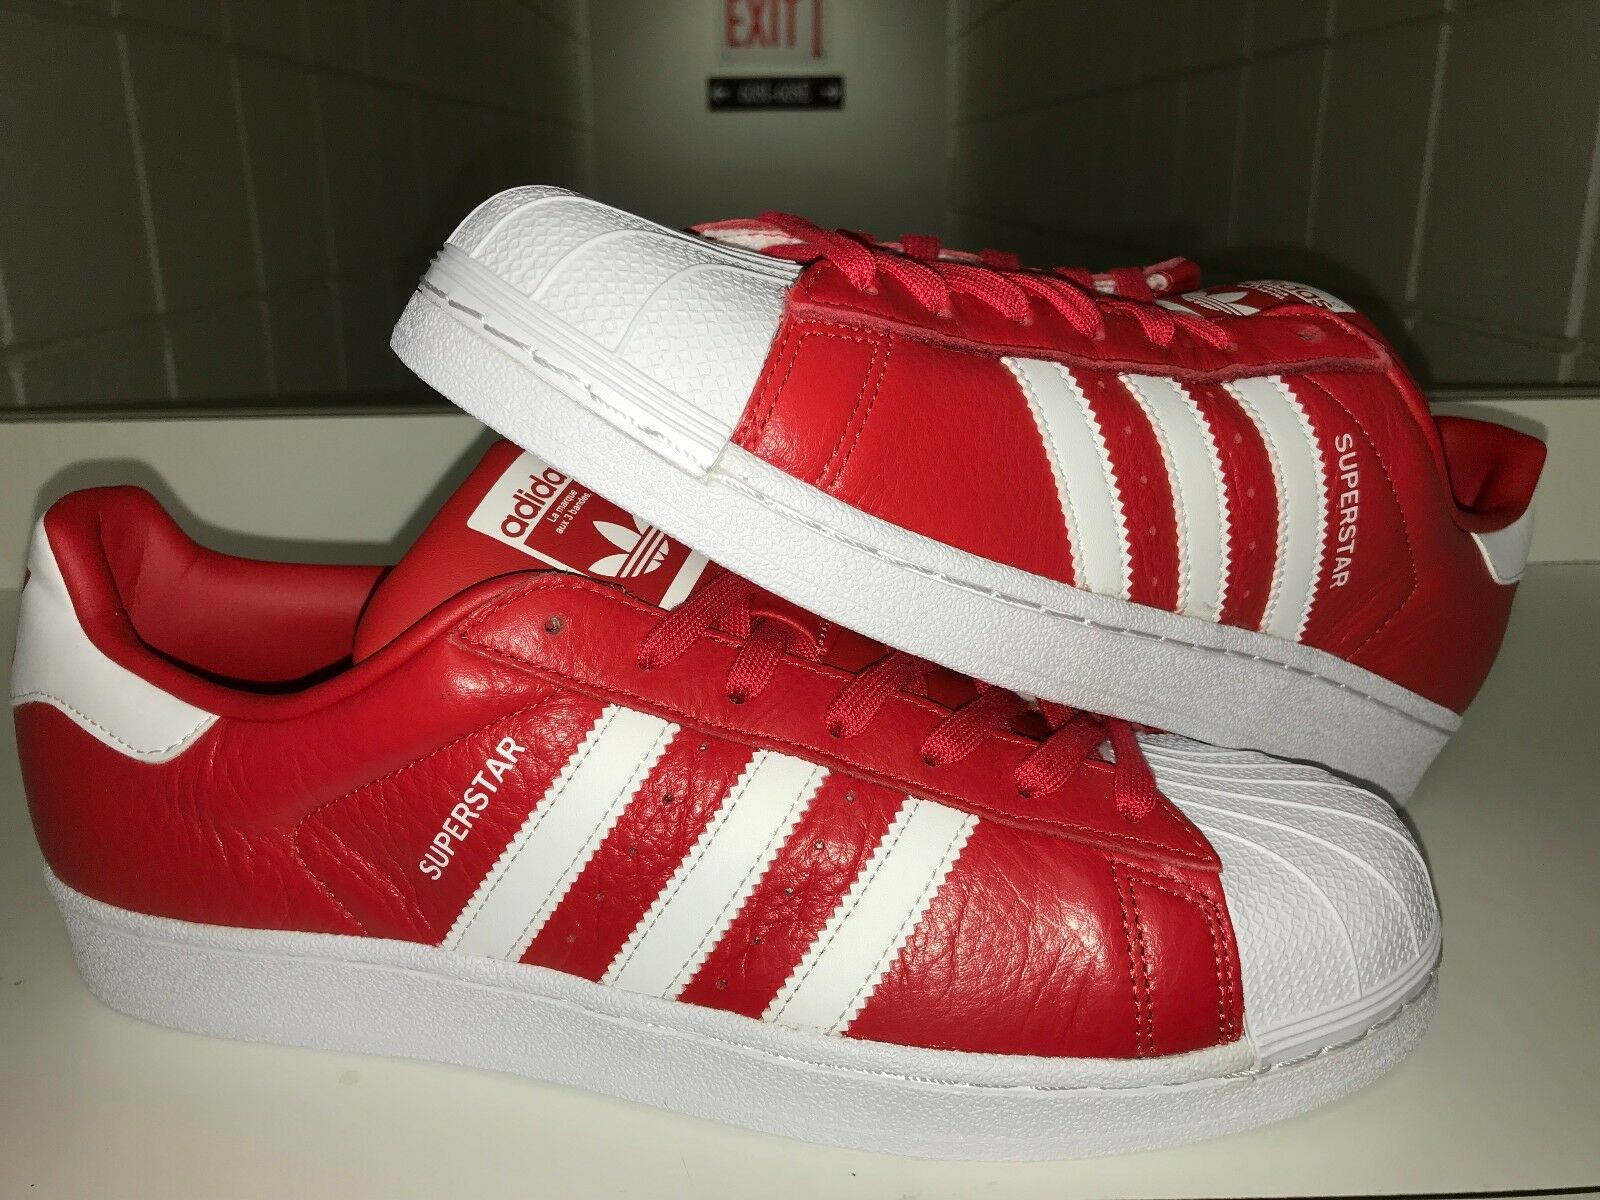 NEW ADIDAS SUPERSTAR FOUNDATION SNEAKERS MEN'S Sz 10.5 SHOES SNEAKERS FOUNDATION RED WHITE BB2240 3ed750